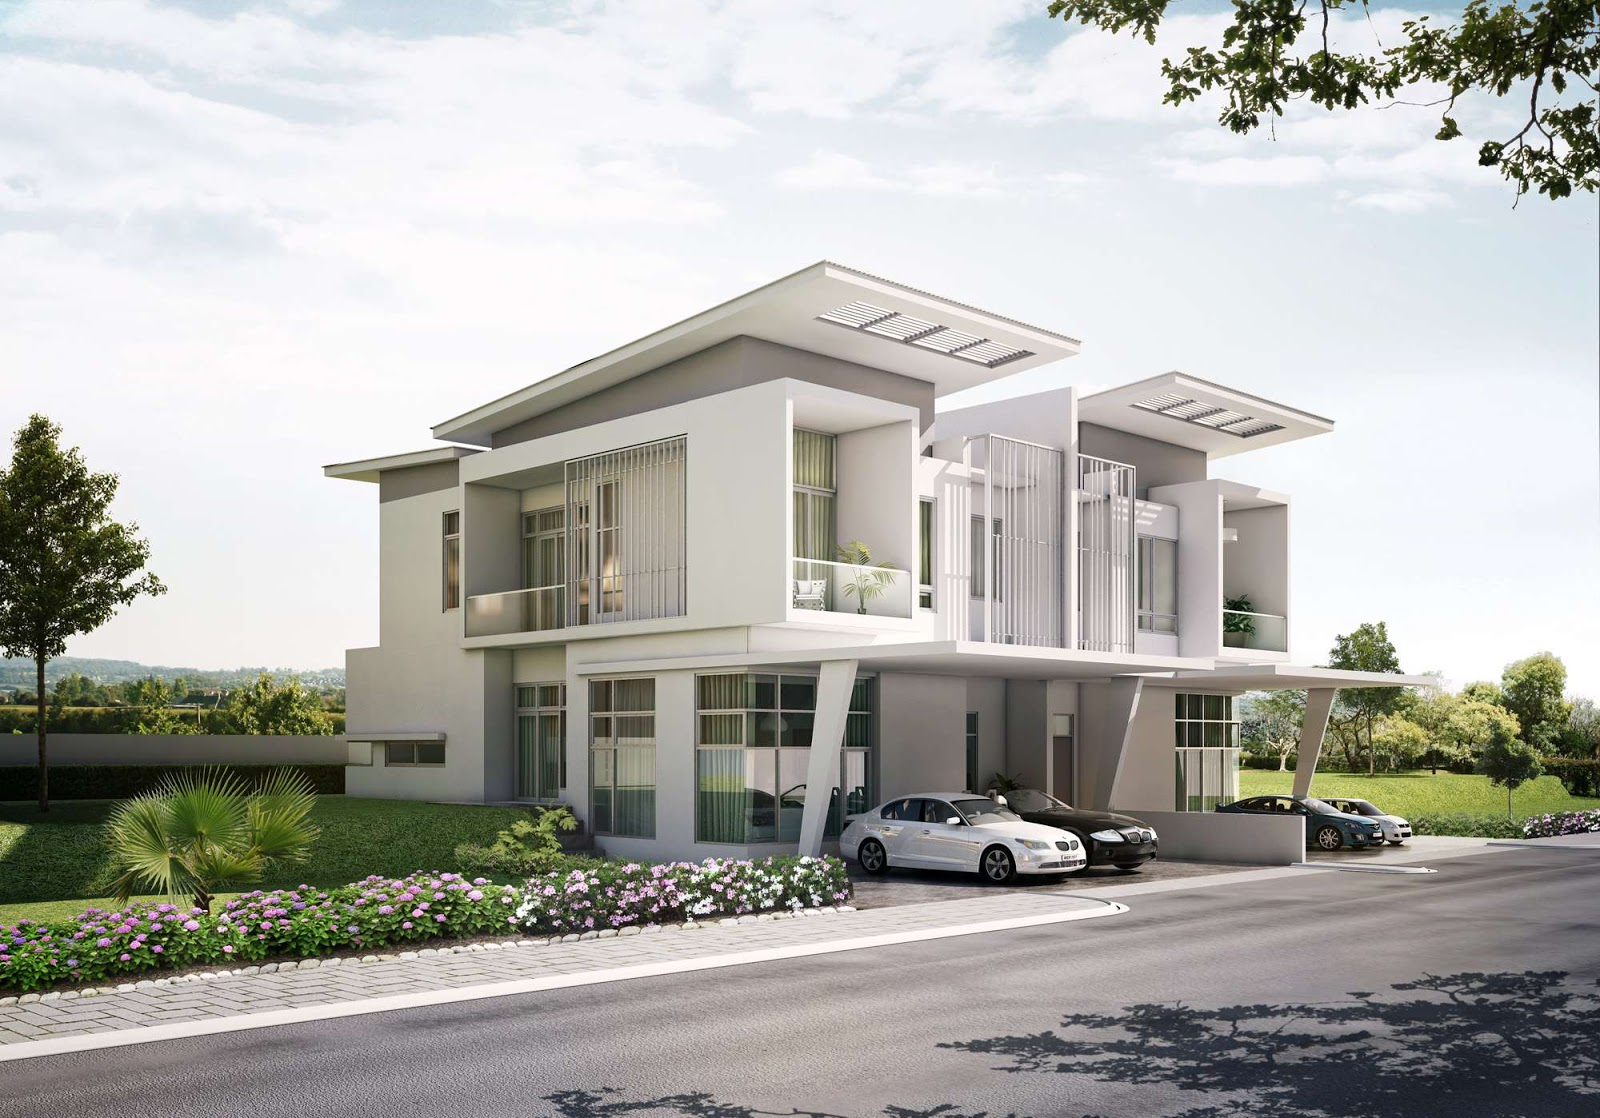 New home designs latest singapore modern homes exterior for Front house exterior design